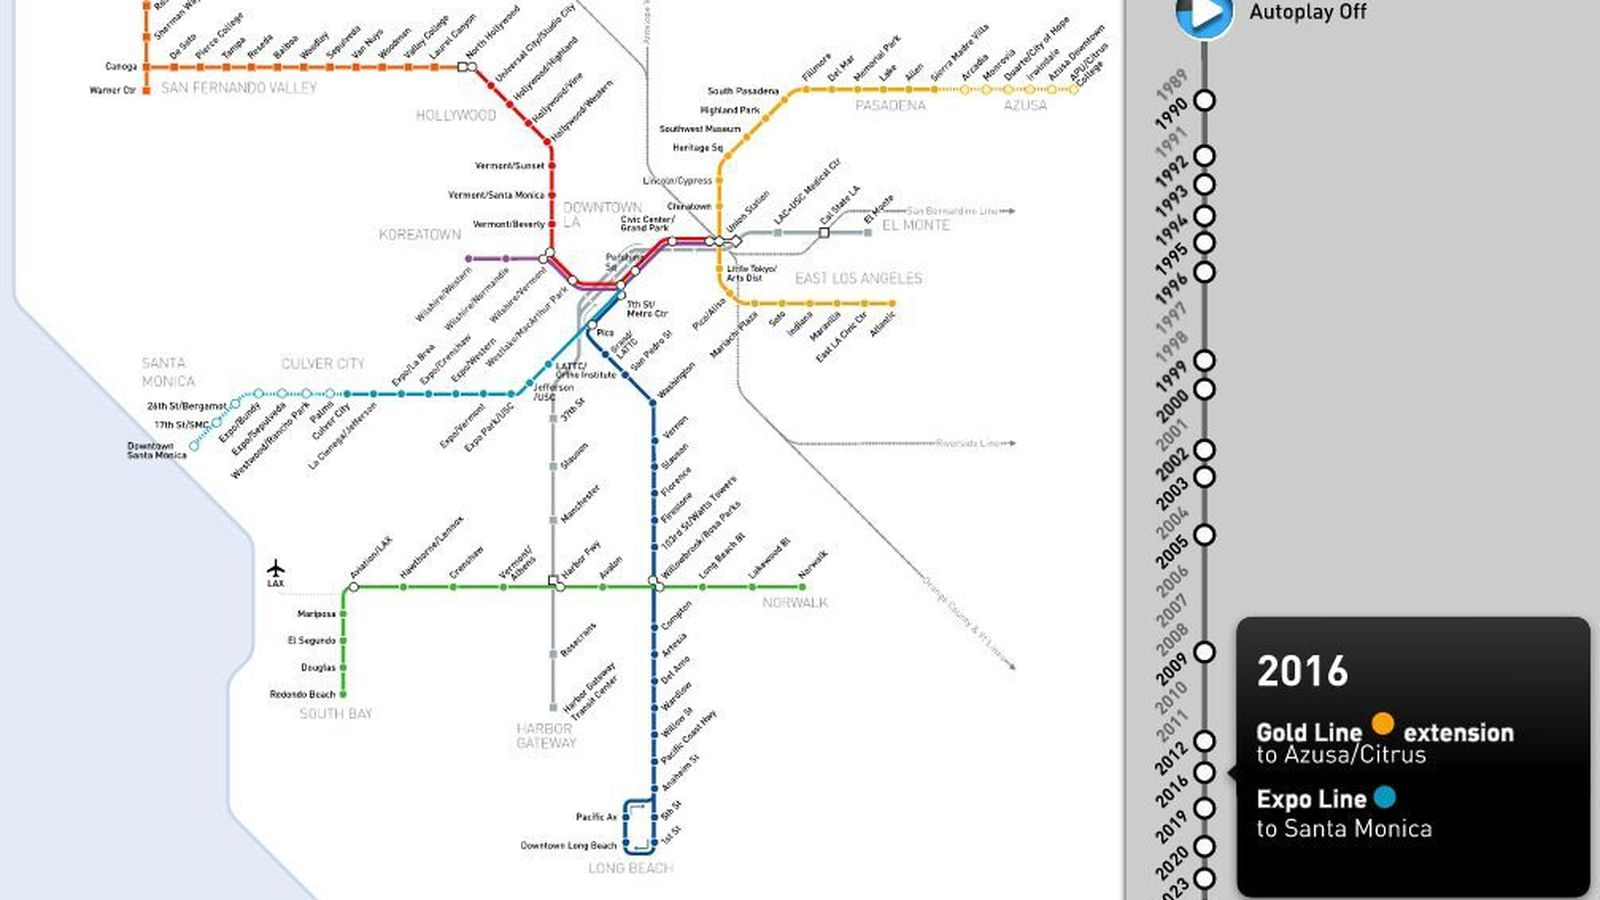 Watch The Los Angeles Metro Rail Maps Spectacular Growth From - Los angeles metro map 2016